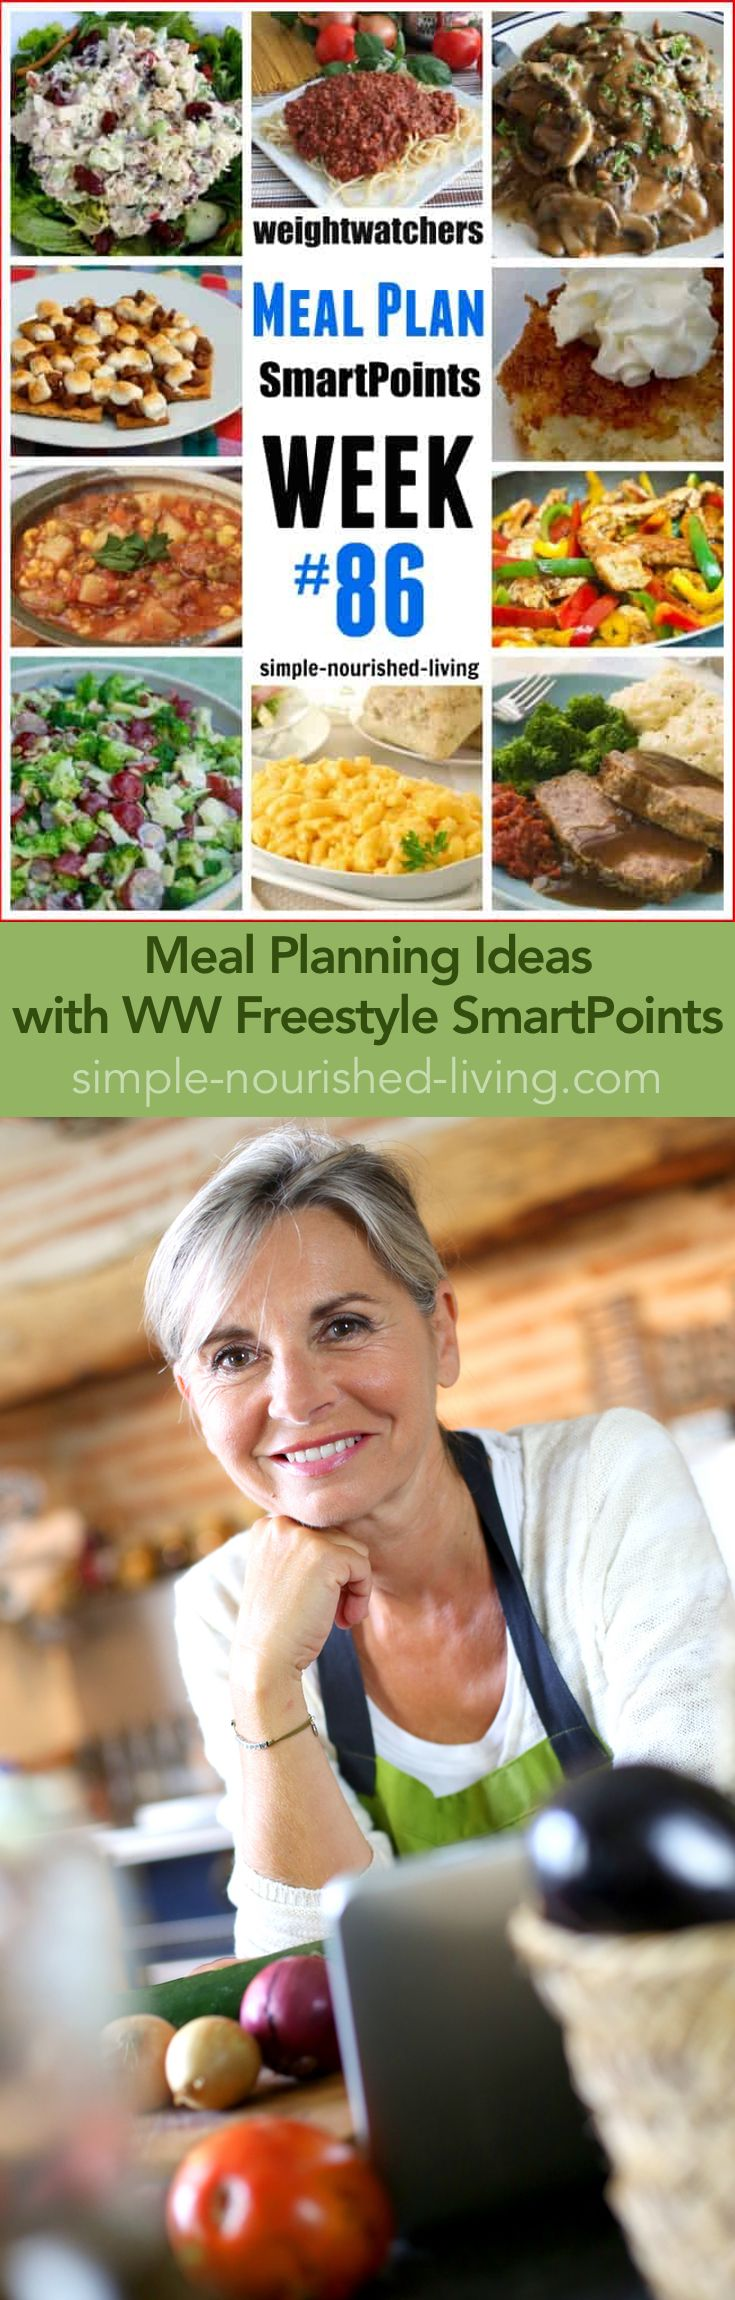 Weight Watchers Friendly Meal Planning Ideas with WW Freestyle SmartPoints. Getting dinner on the table is so much easier when I've planned what I'm cooking and eating ahead of time and done the grocery shopping - Simple-Nourished-Living.com